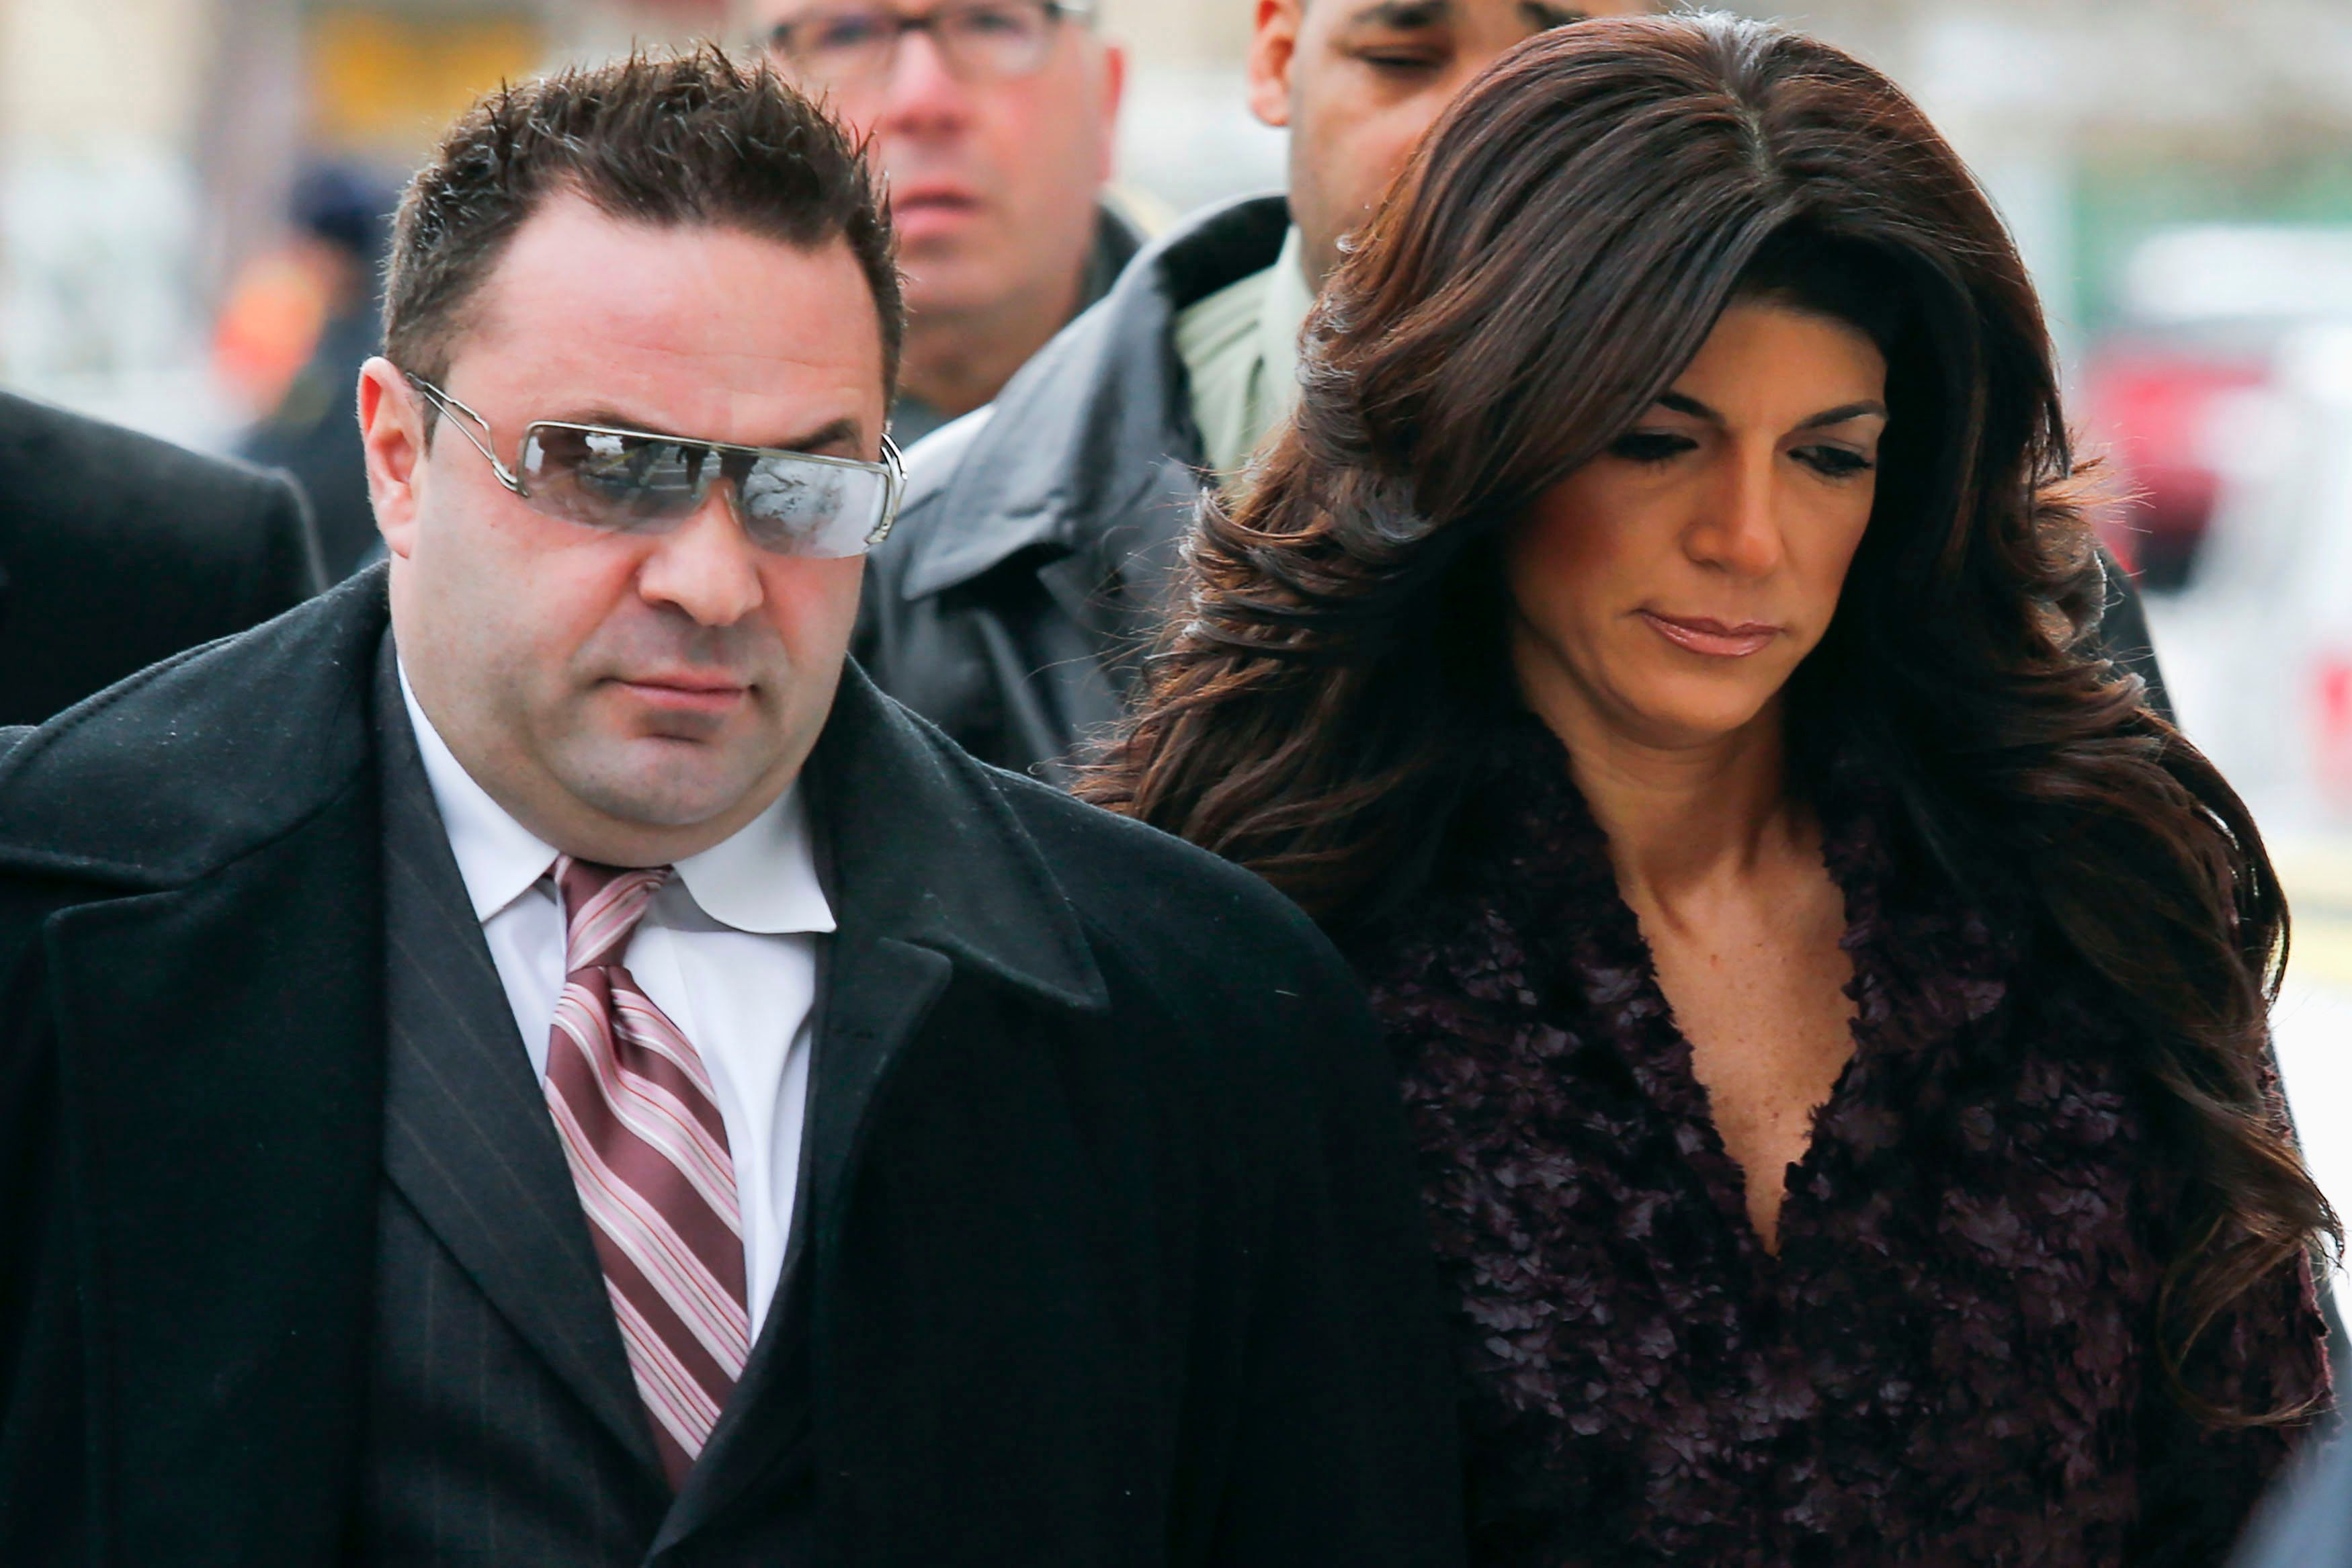 Teresa Giudice Devastated Over Husband Joe's Deportation, Unlikely to Move to Italy